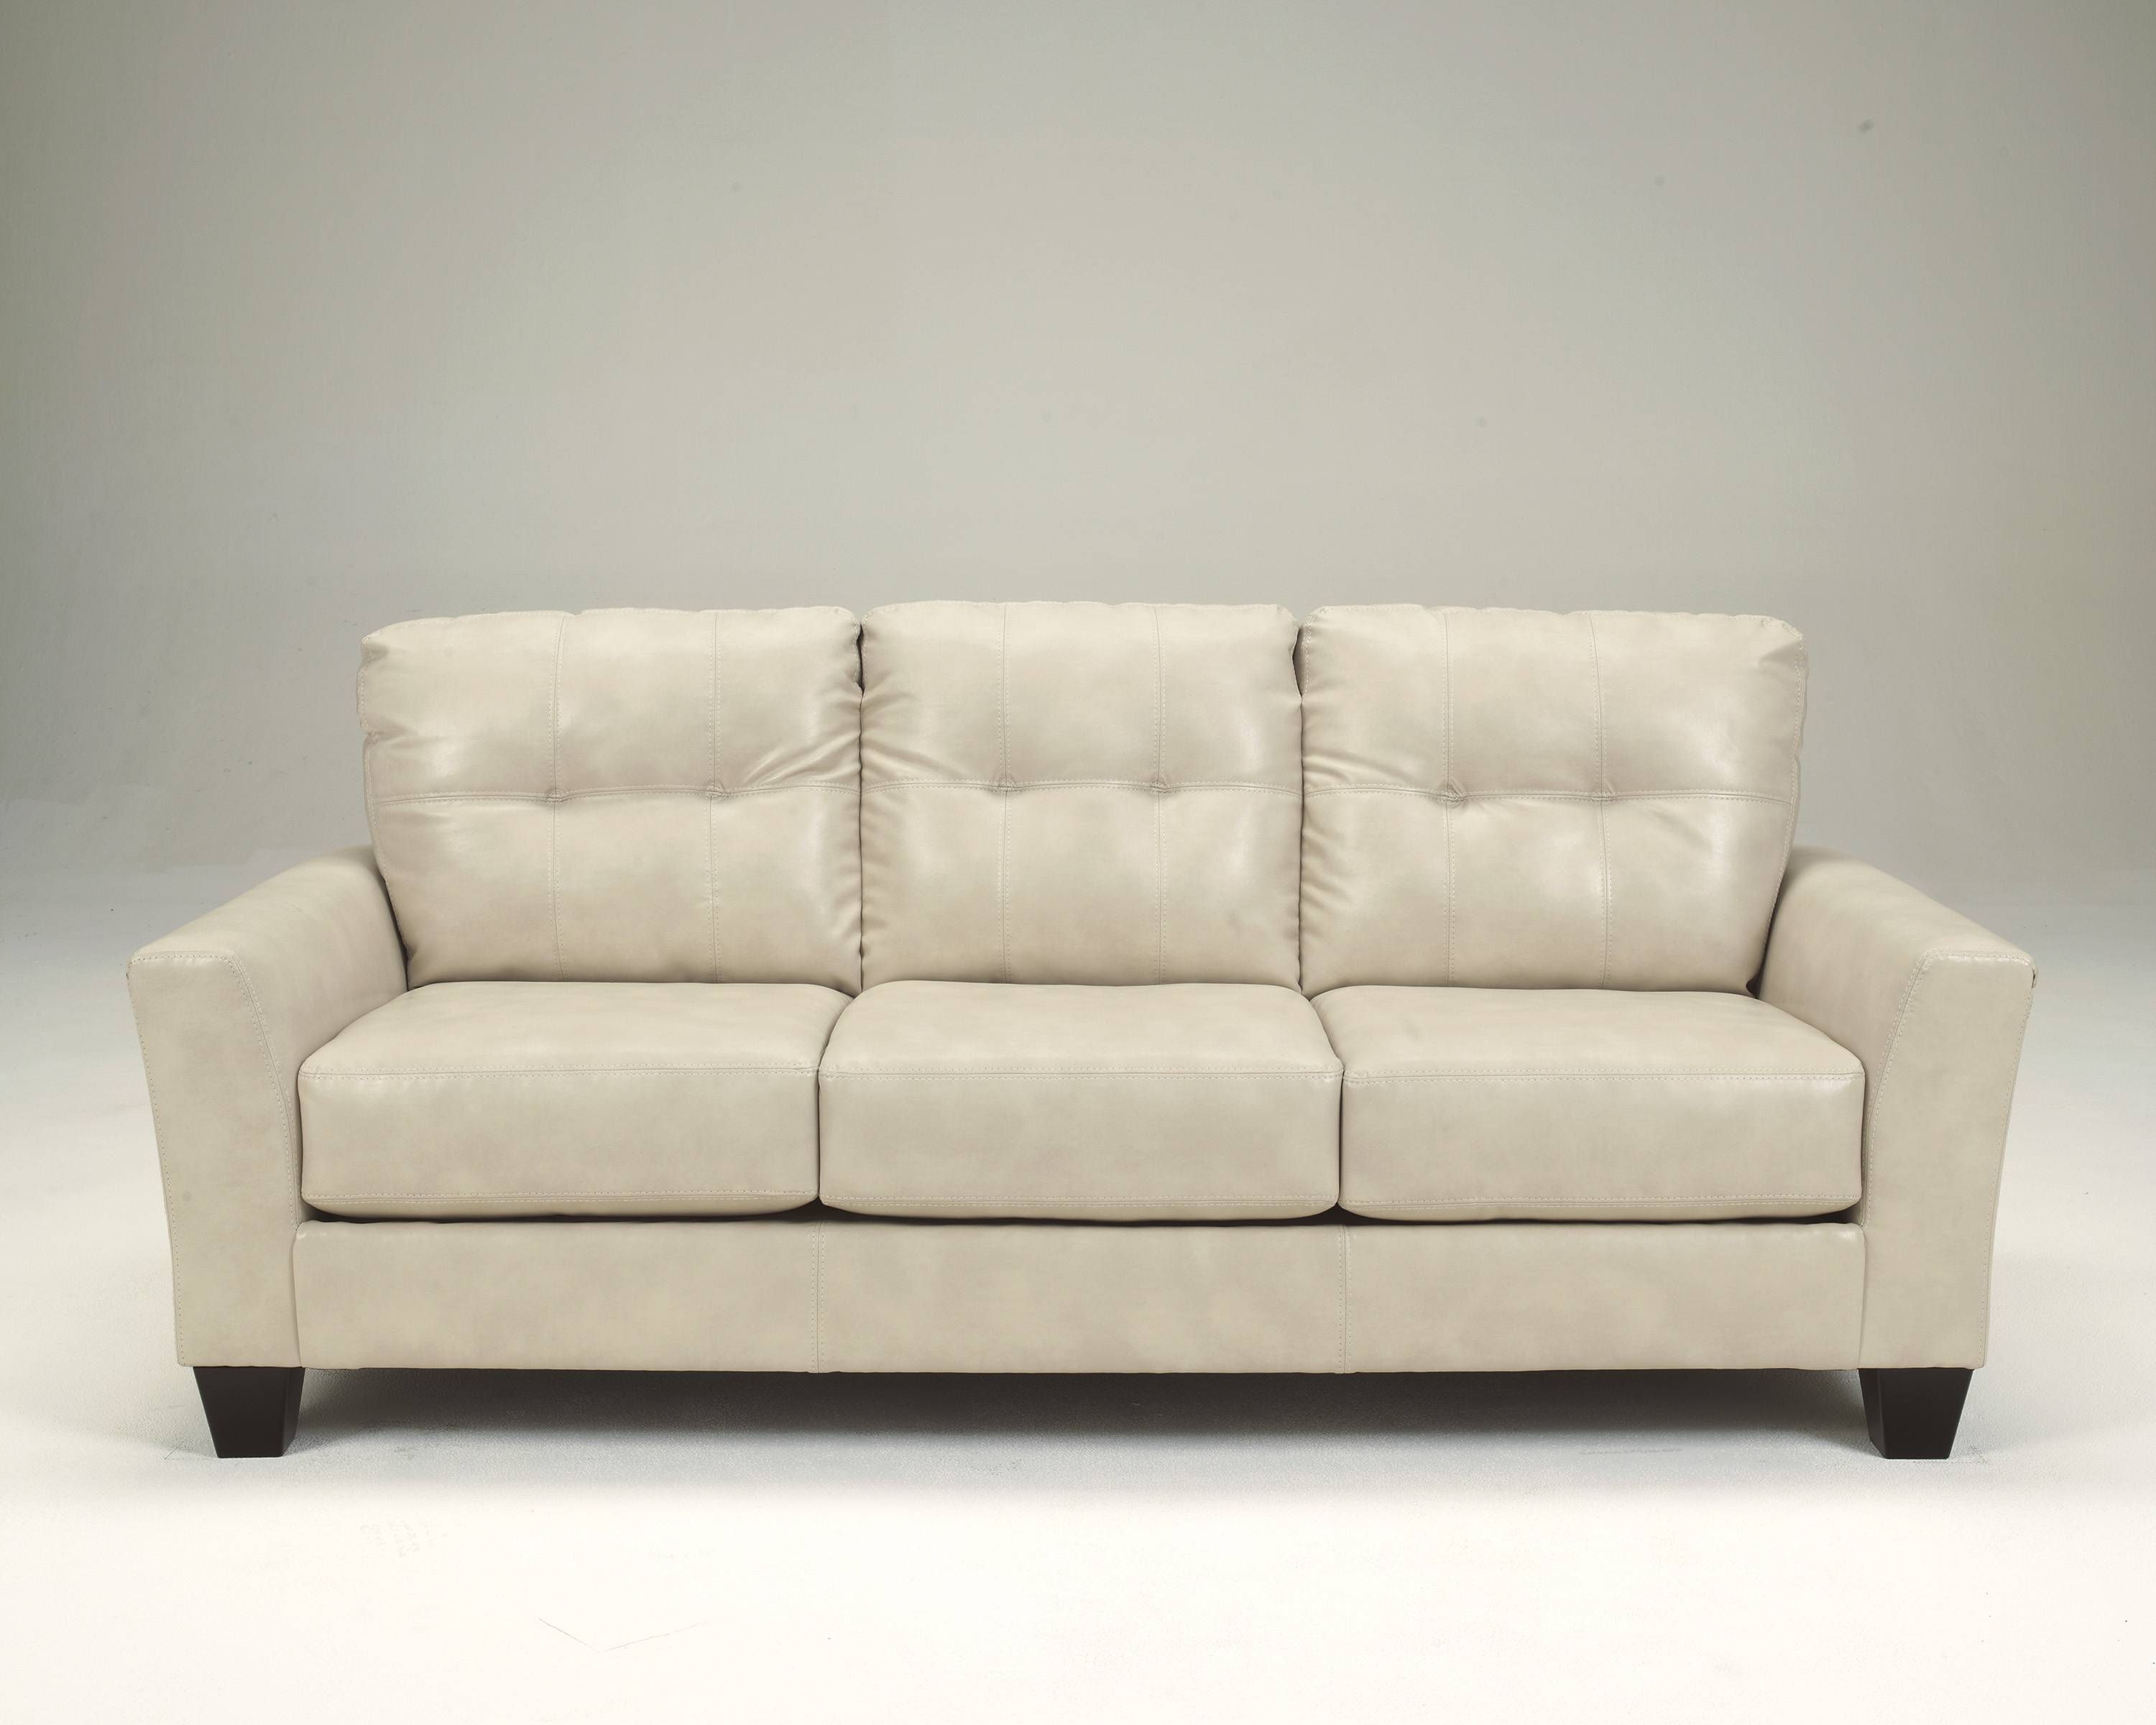 White Leather Sofa | Home Design Ideas within White Sofa Chairs (Image 28 of 30)